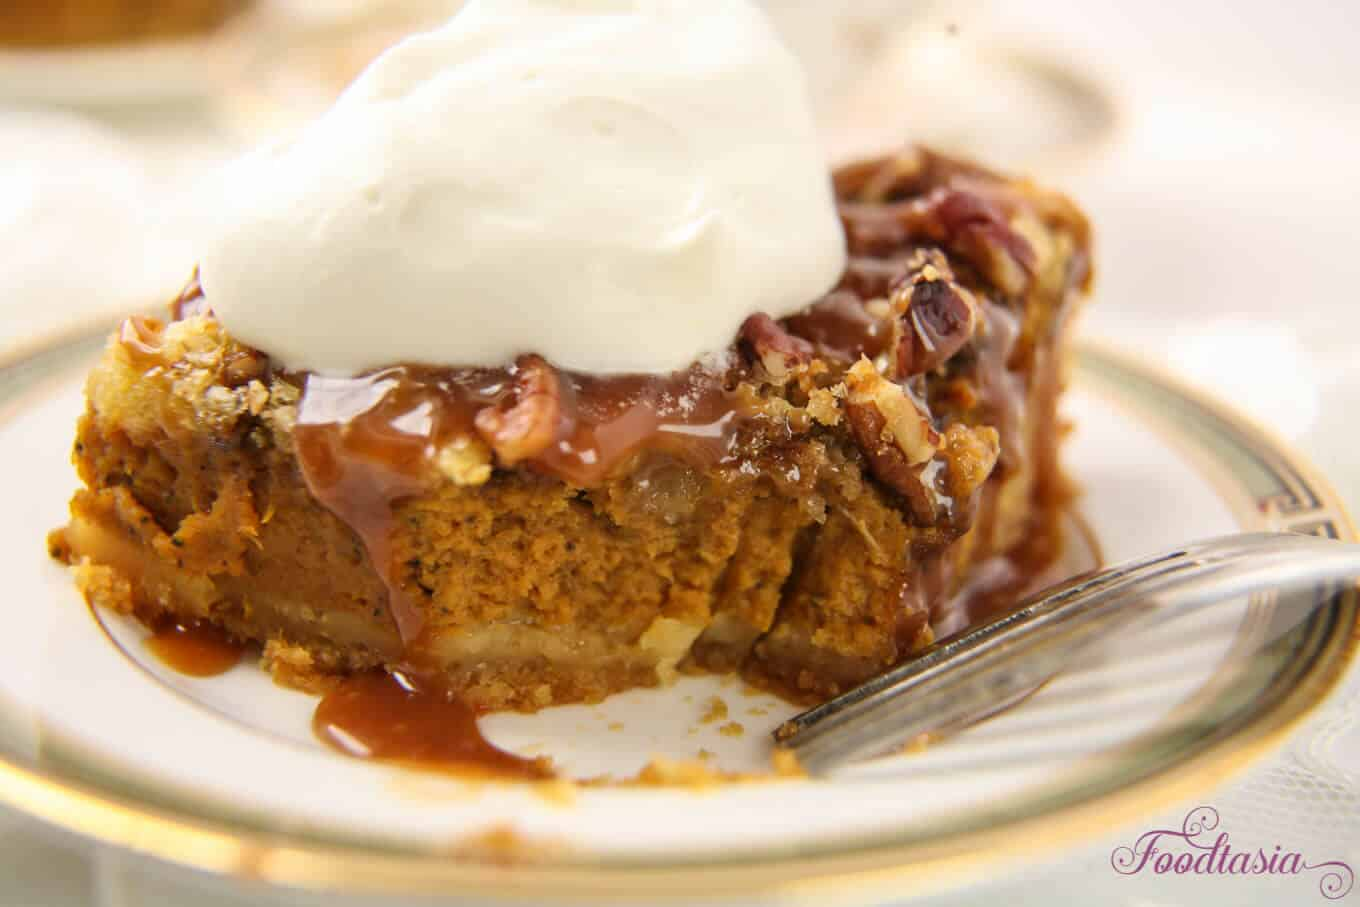 Pecan Crumble Pumpkin Cobbler With A Caramel Drizzle